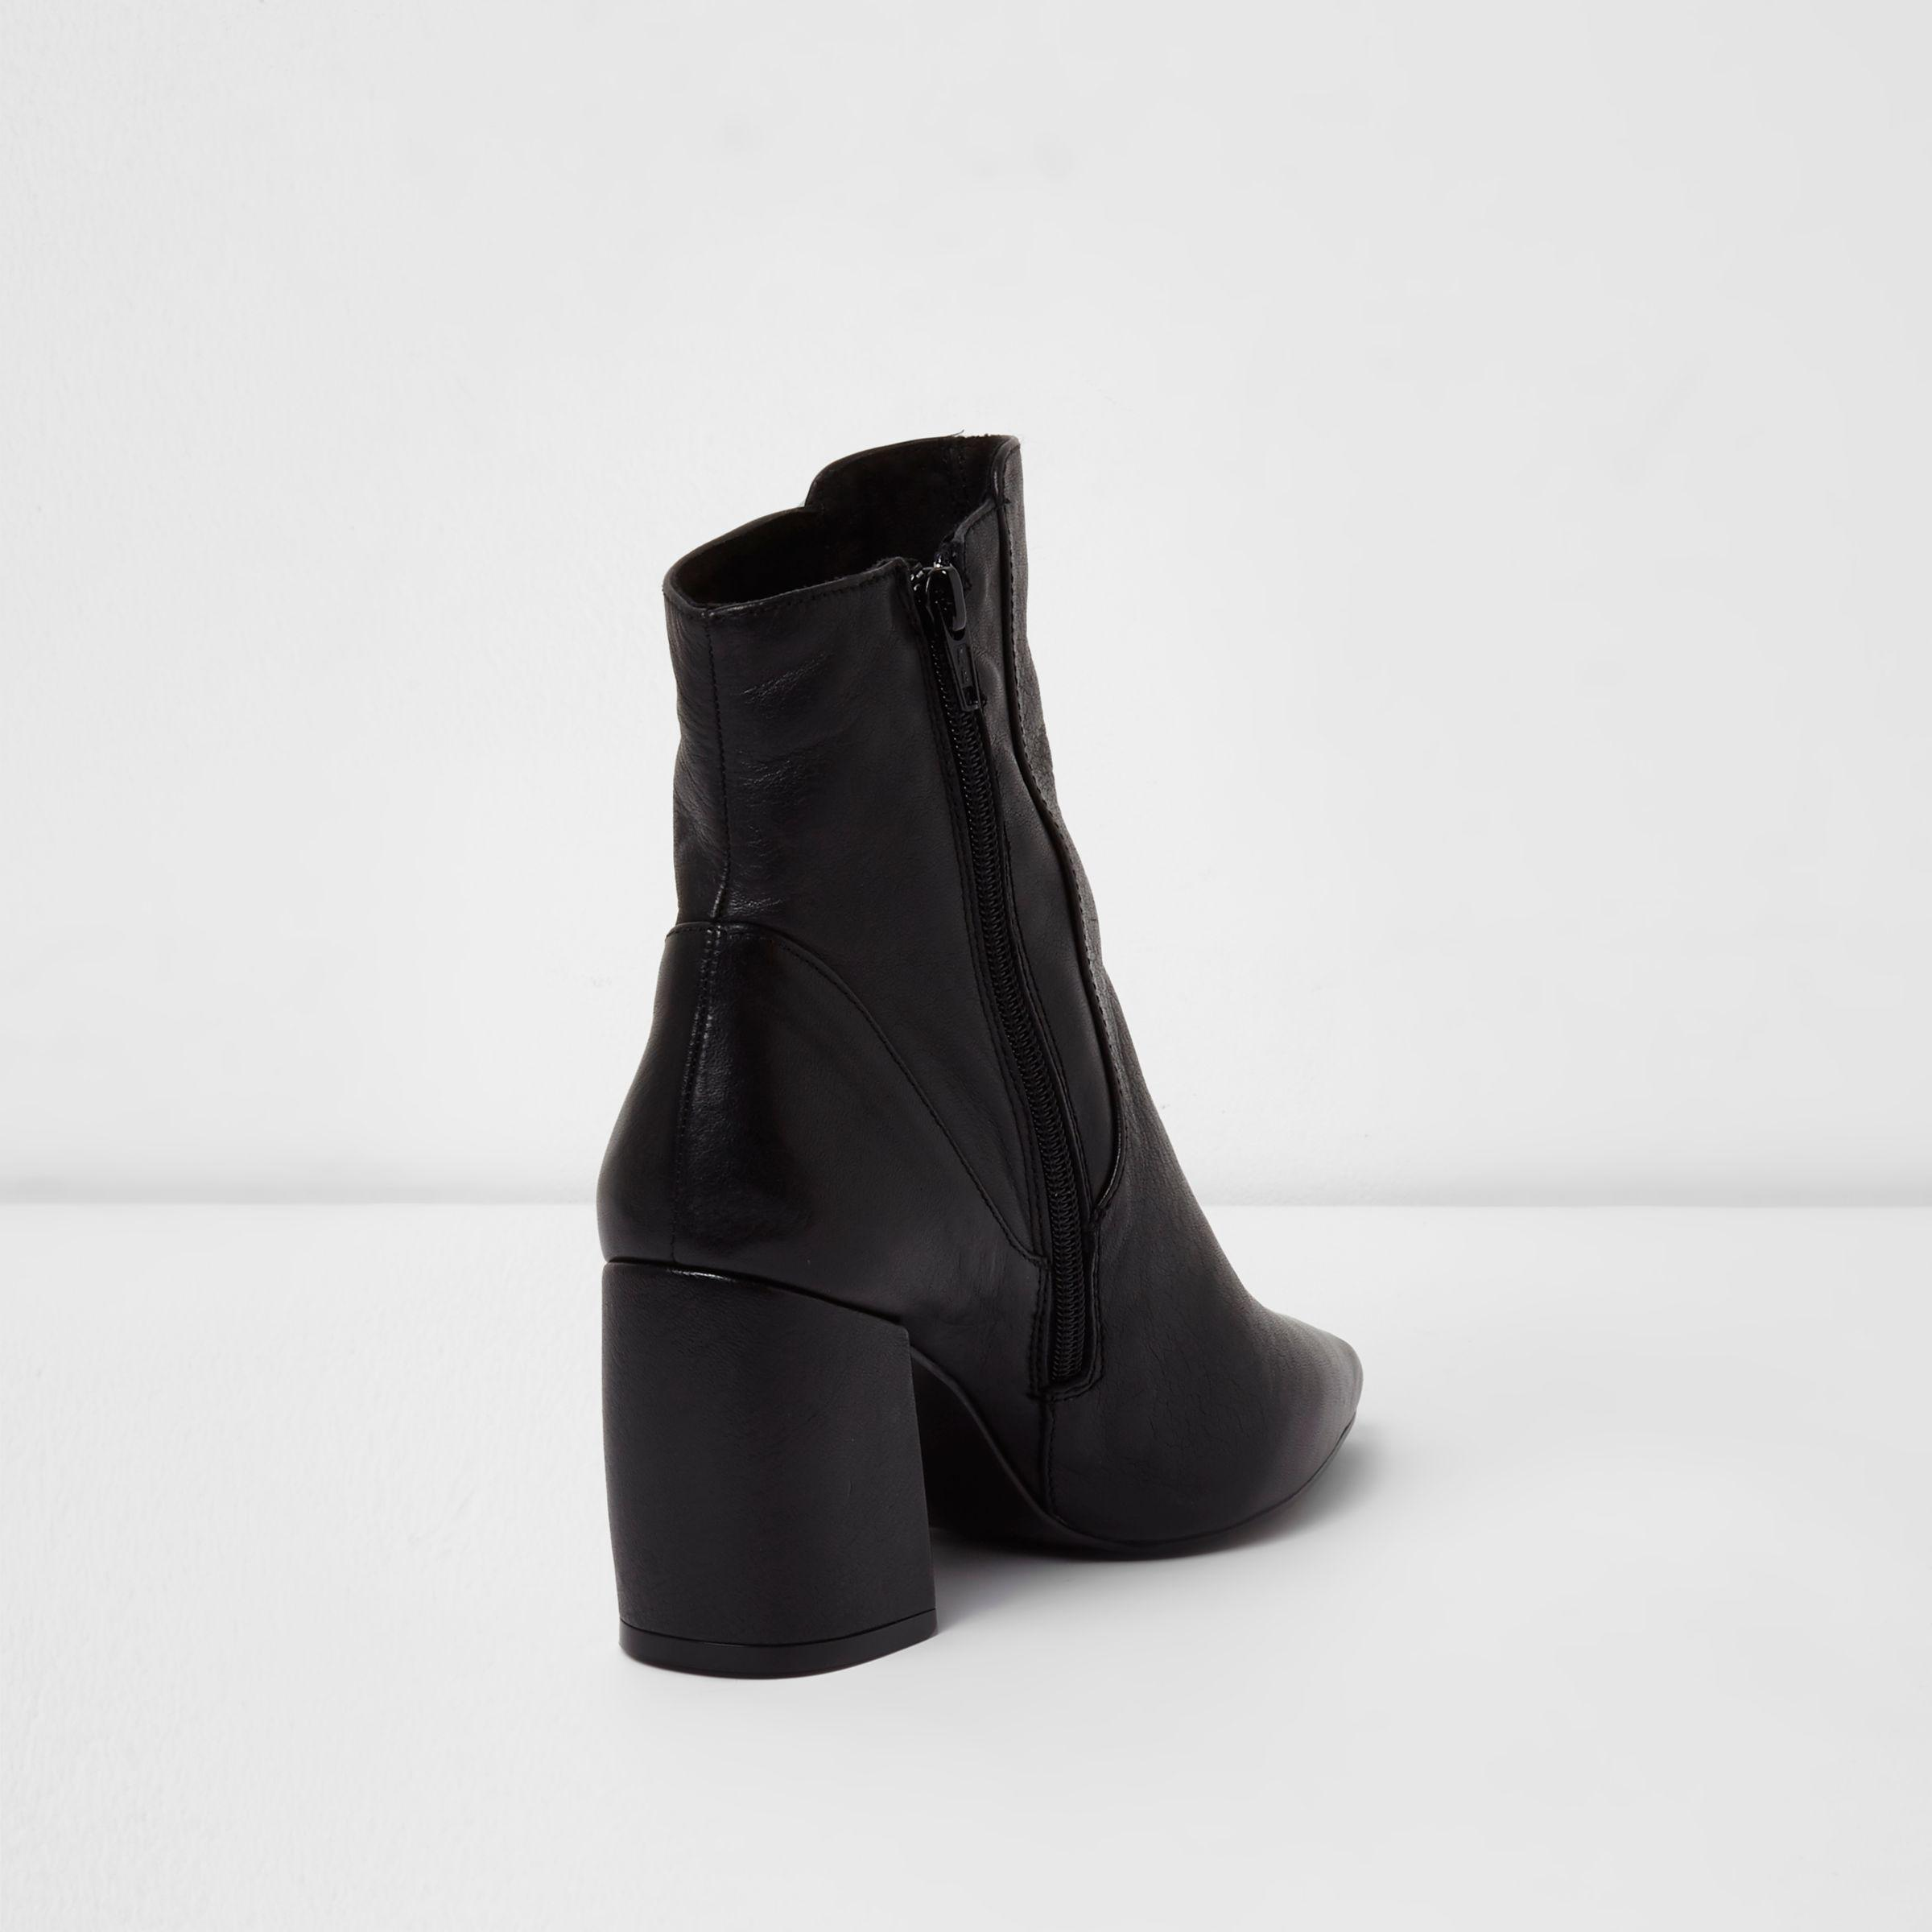 38db594174b6 River Island Black Leather Curved Heel Pointed Ankle Boots in Black ...